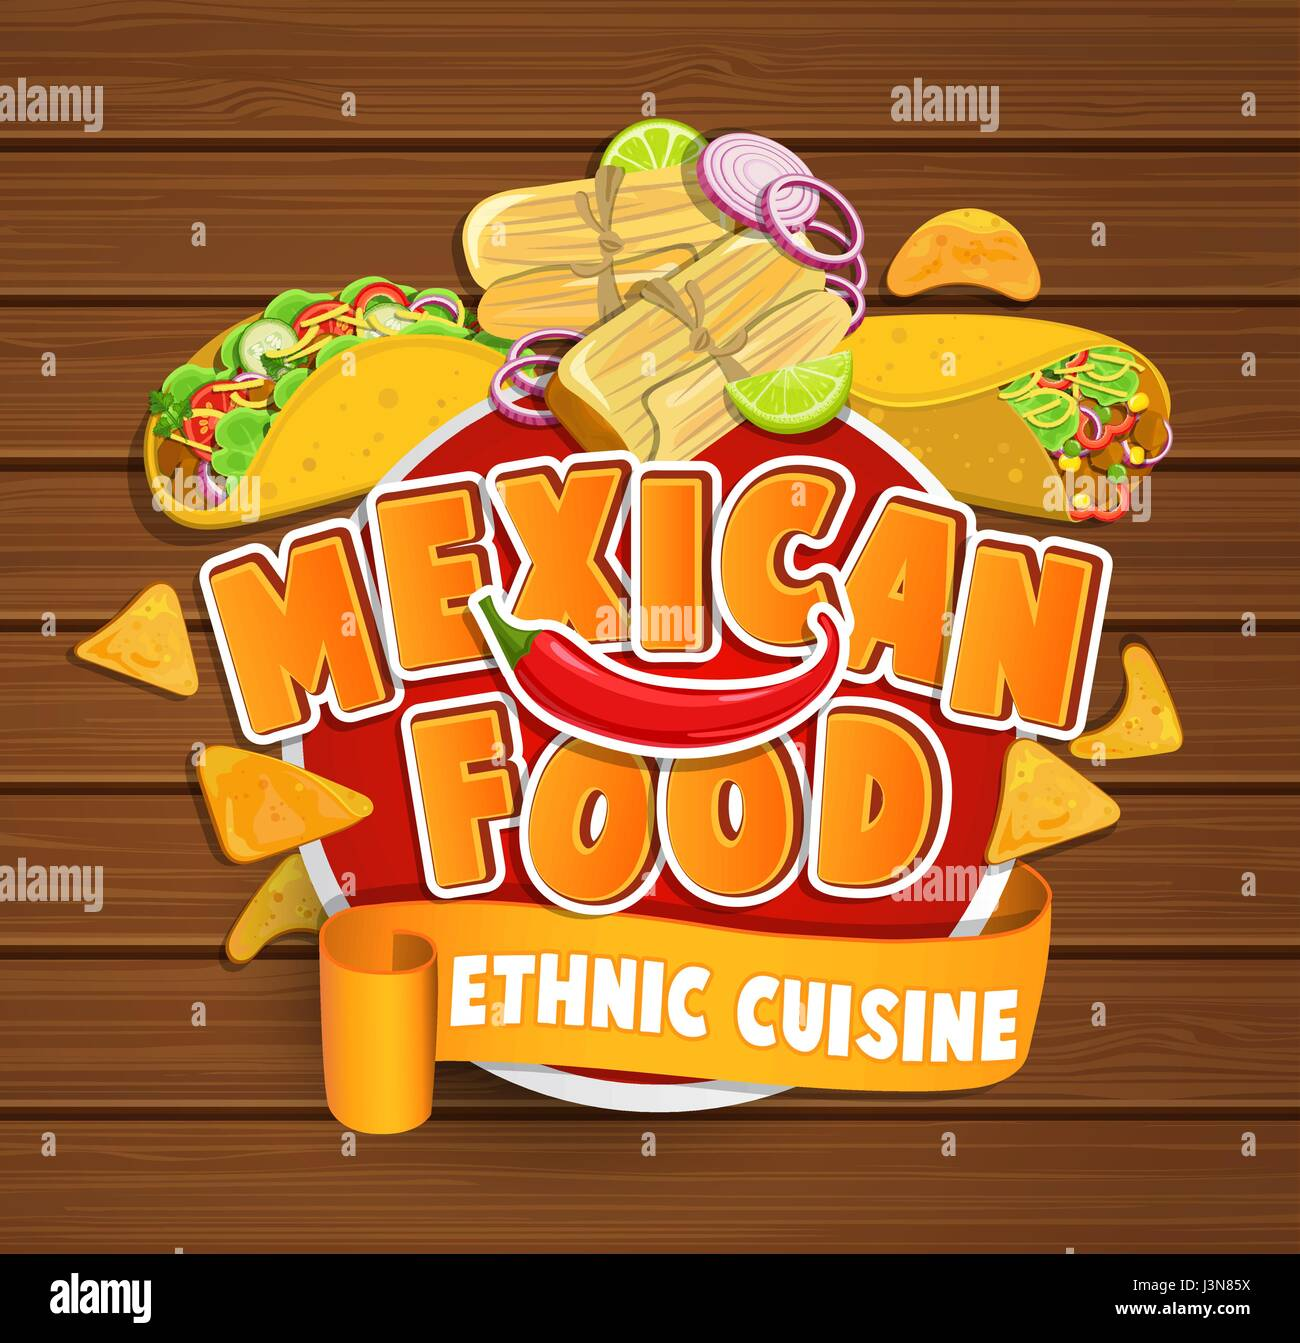 Mexican food logo, food label or sticker  Concept of ethnic